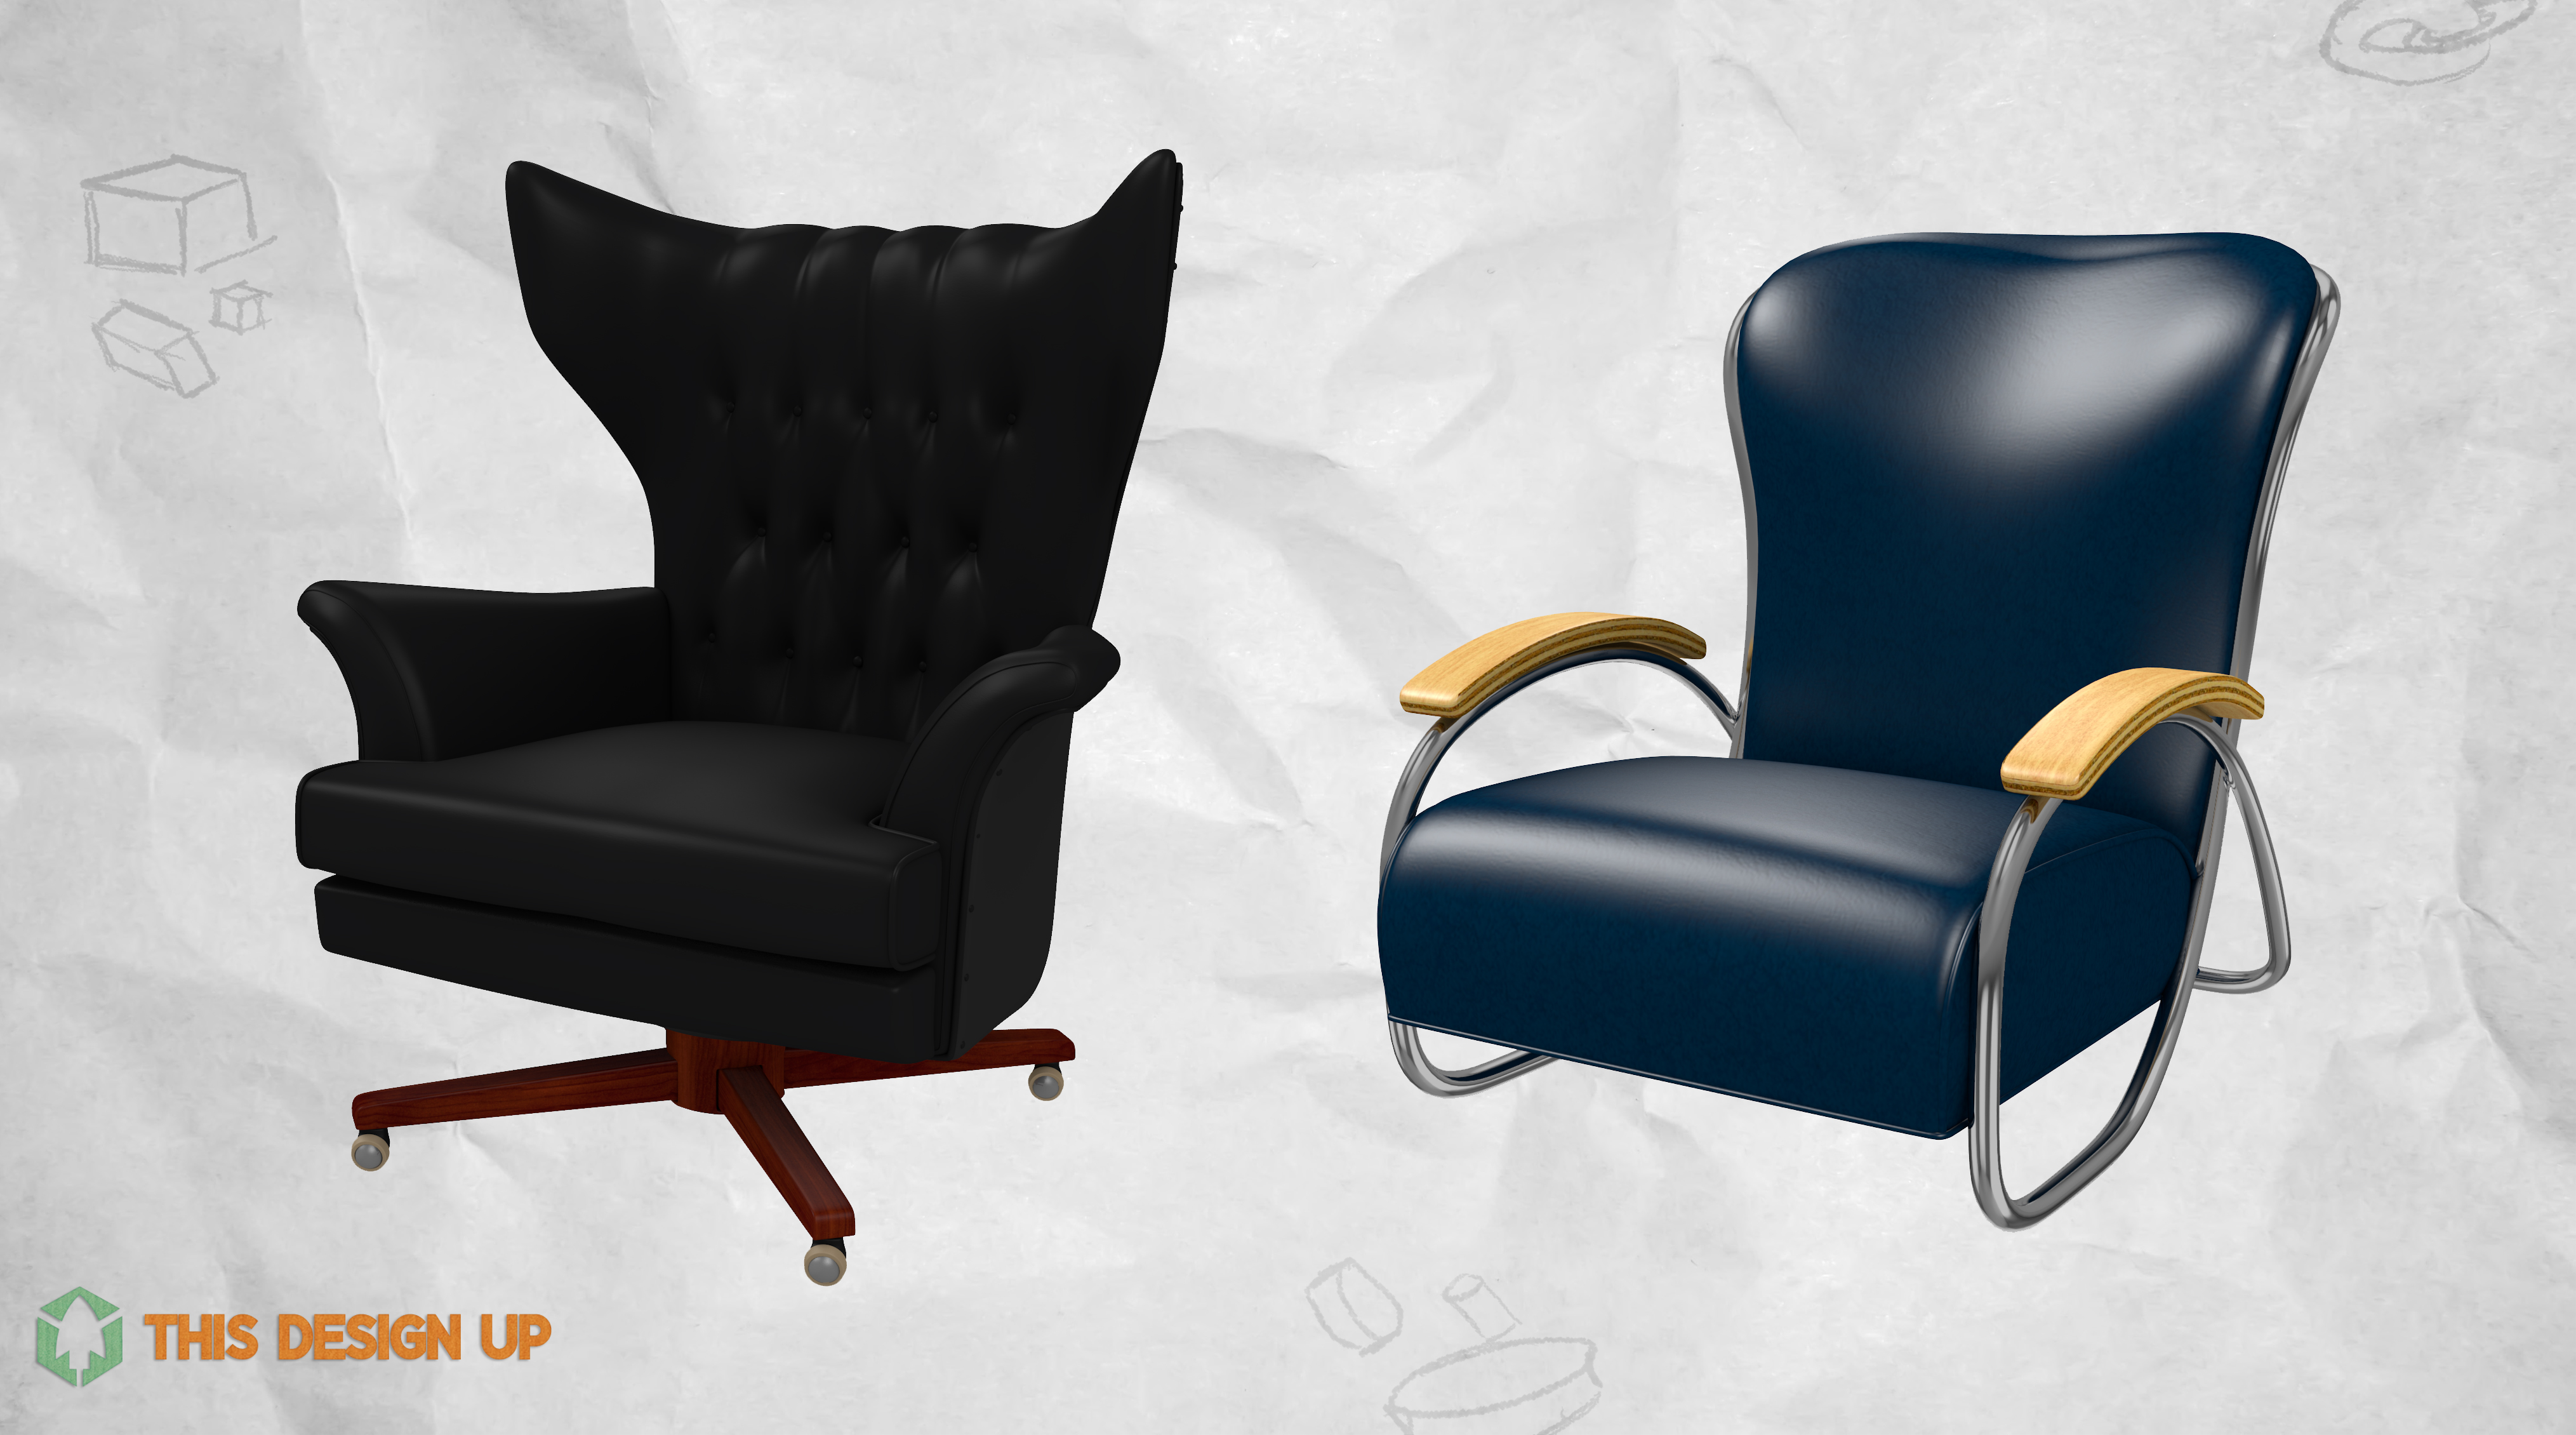 wingback_and_deco_chair_models__download__by_thisdesignup-d6fi8sf.jpg